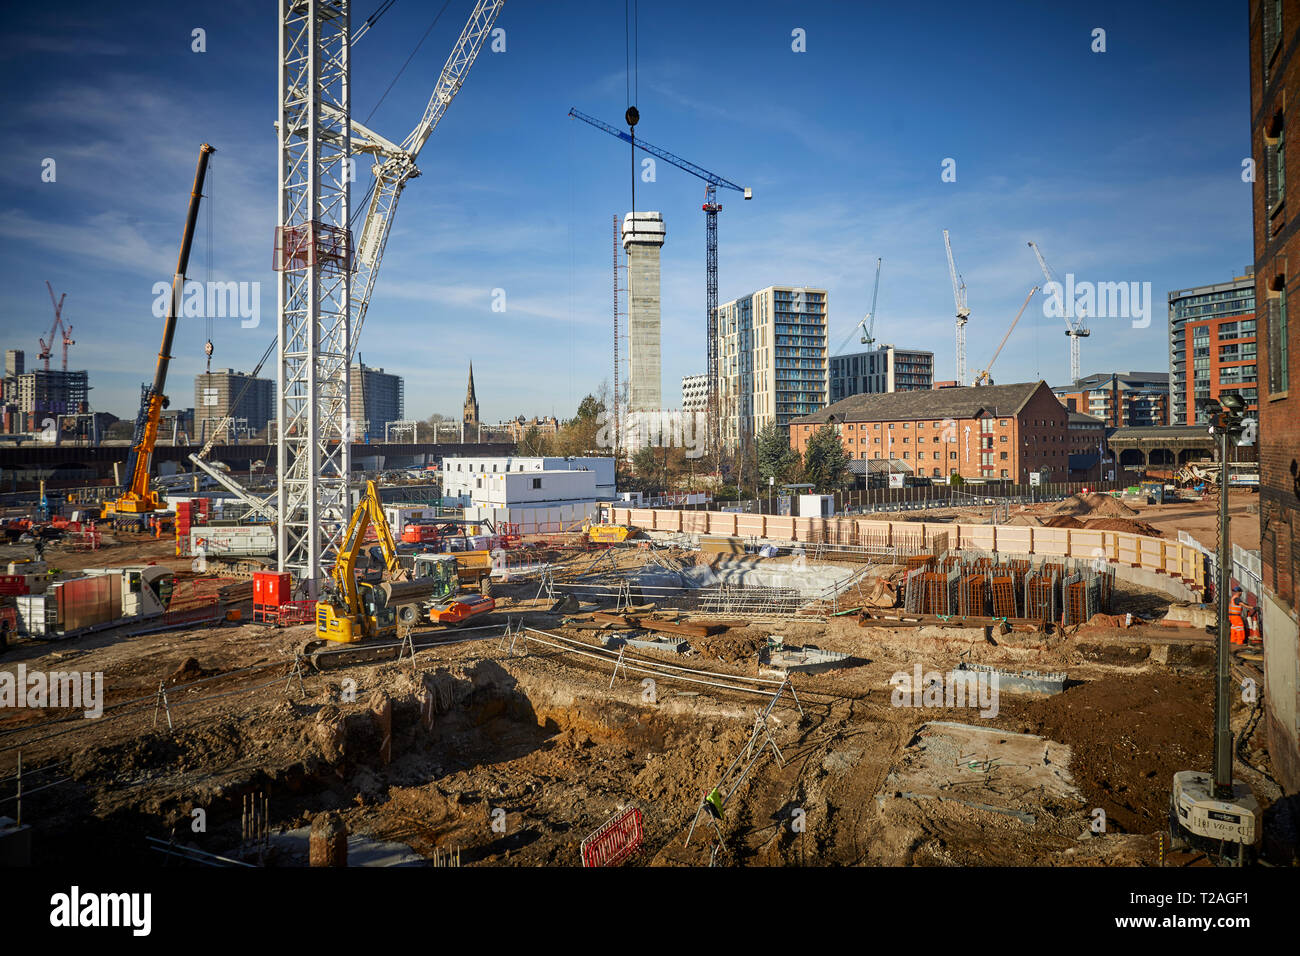 Groundwork St John's £1 bn development  6 hectare plot  central Manchester The Factory  Manchester's world-class new cultural space work starts - Stock Image